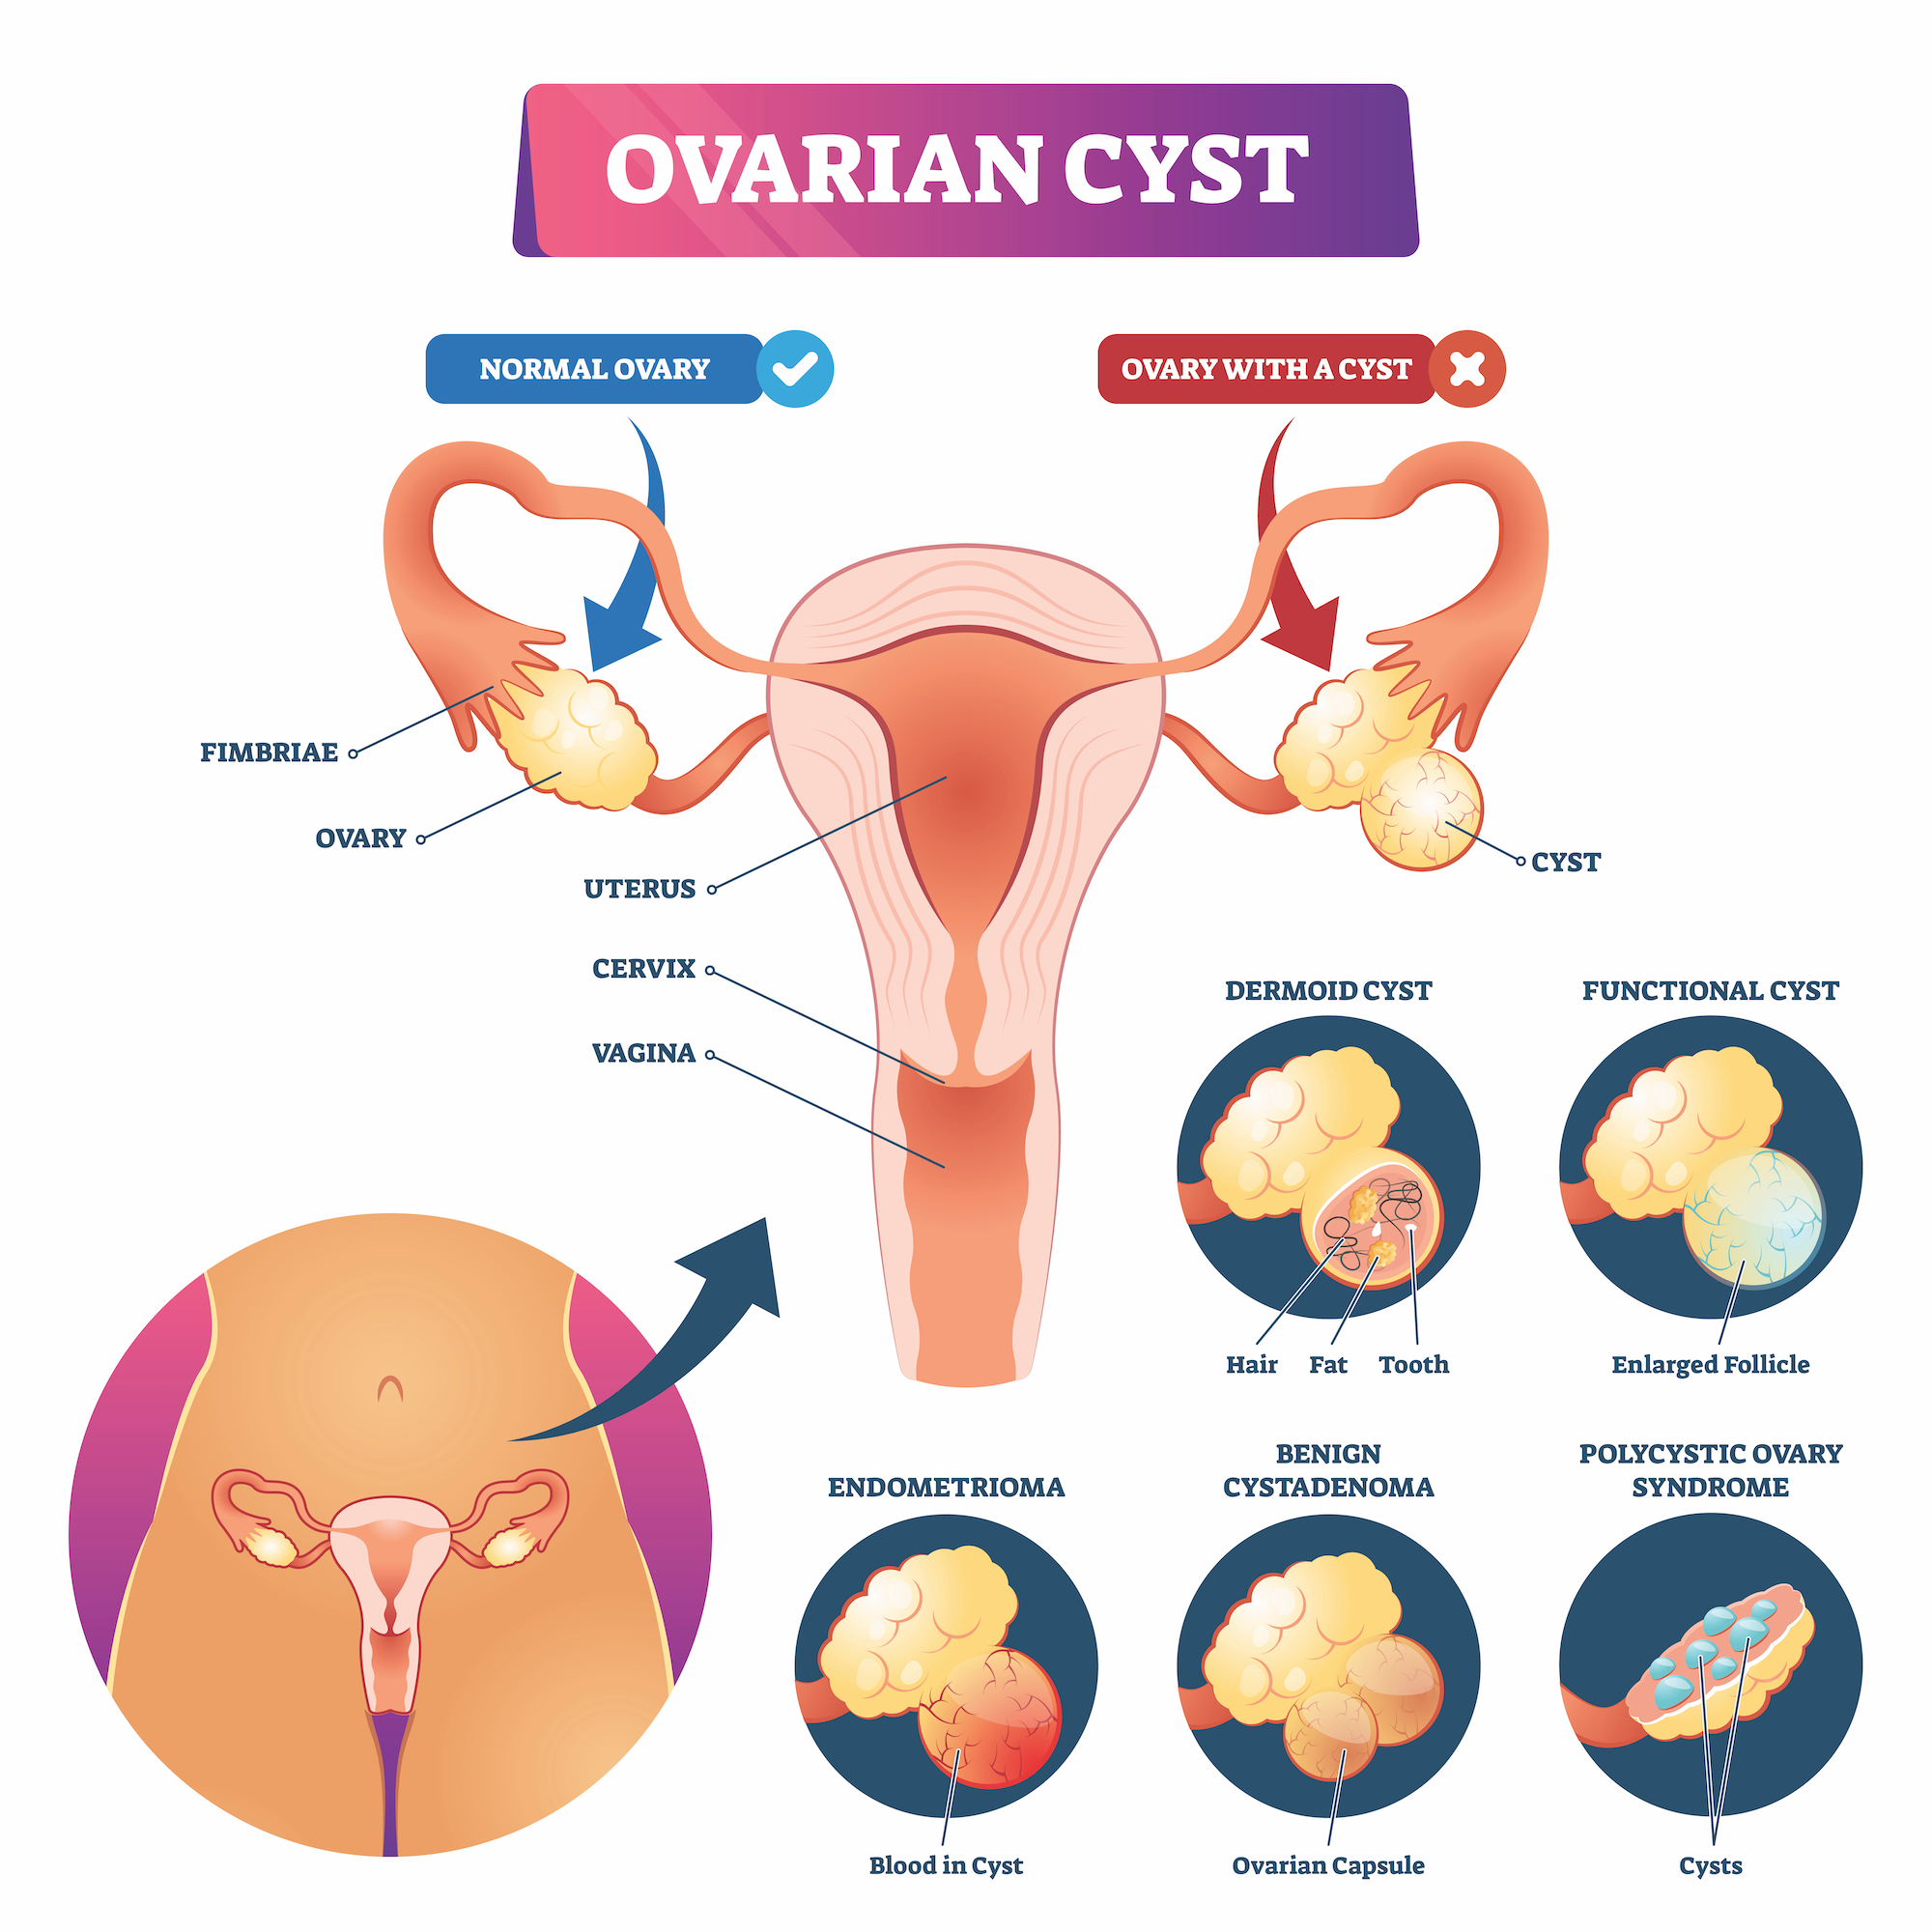 Diagram of different types of ovarian cysts